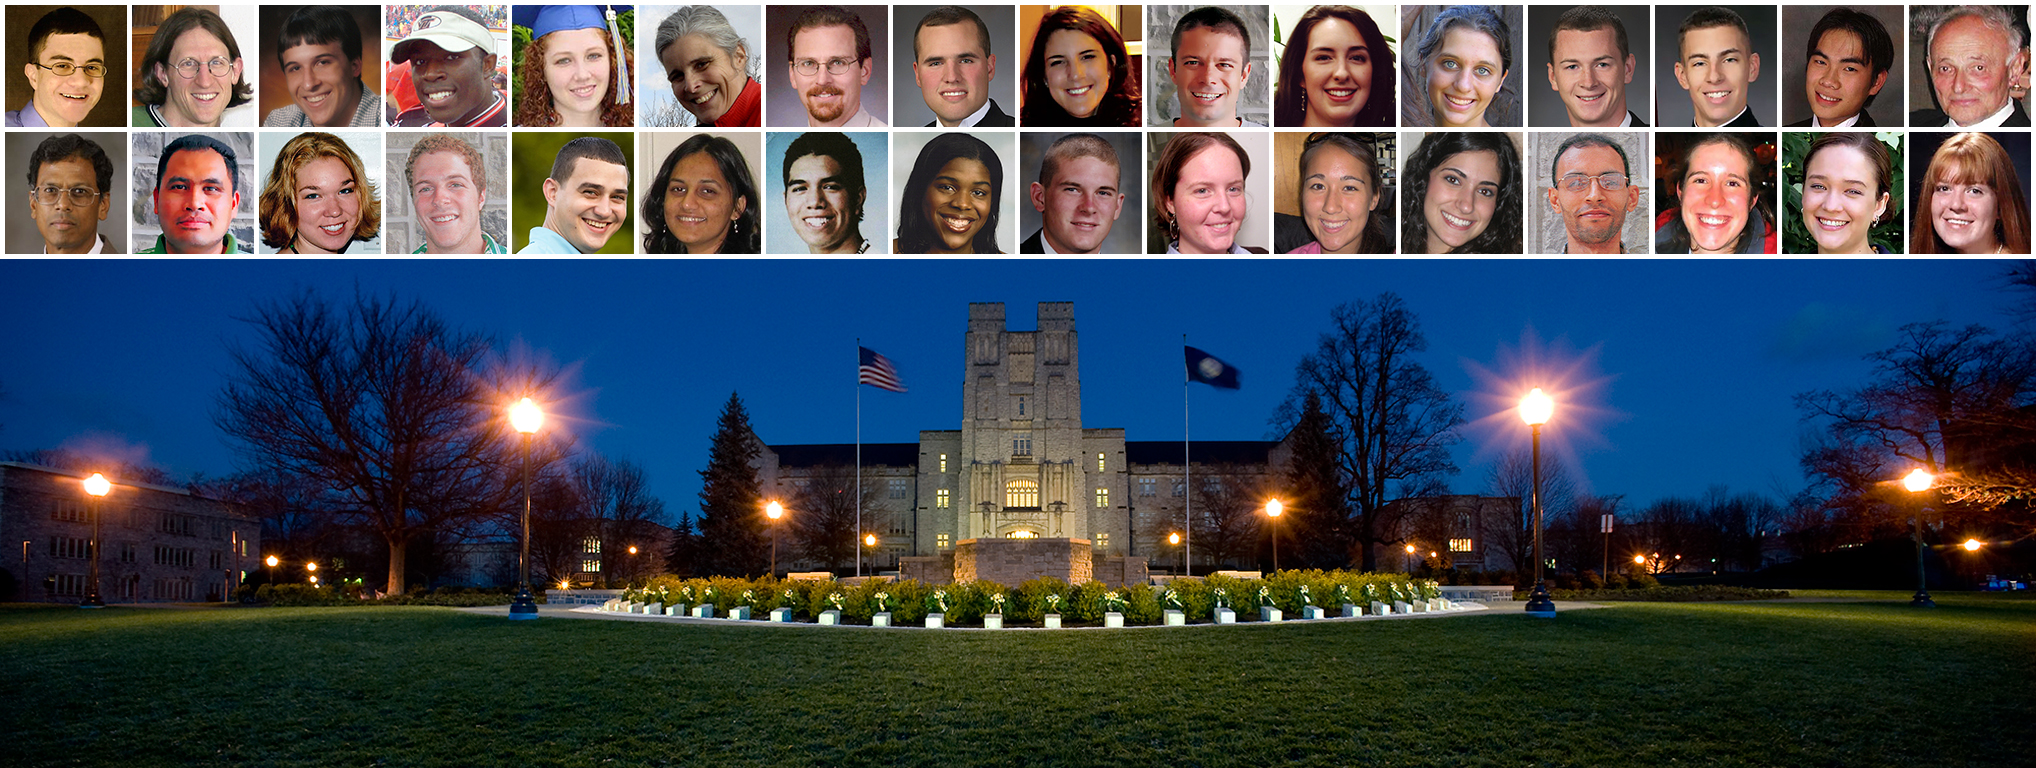 virginia massacre About this site the we remember website provides information about the 32 students and faculty members who were tragically taken from their loved ones and our.